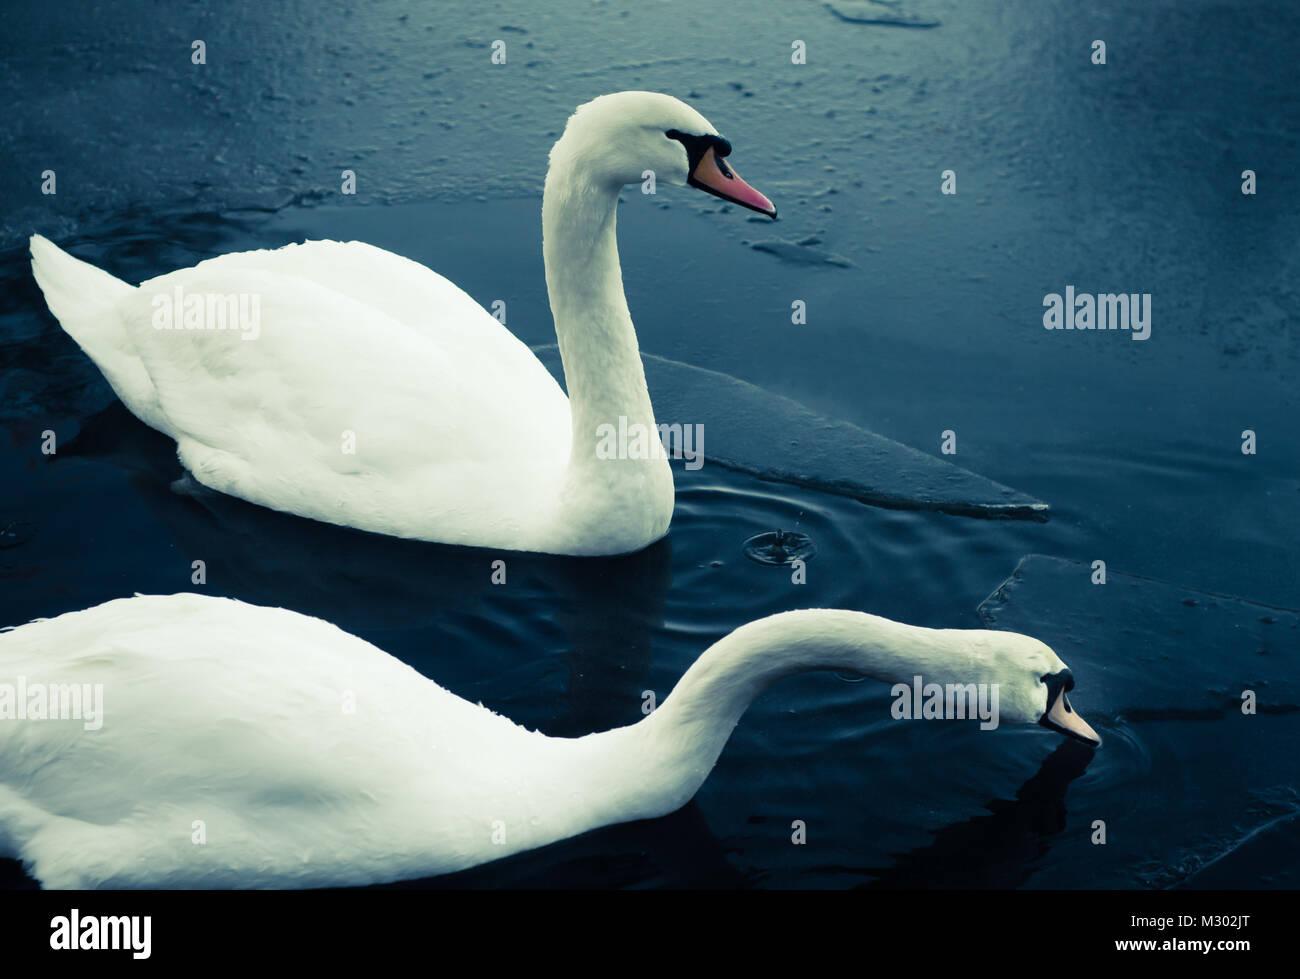 Two Swans Swim Amongst Ice in a Freezing Pond in Scotland in Winter Stock Photo